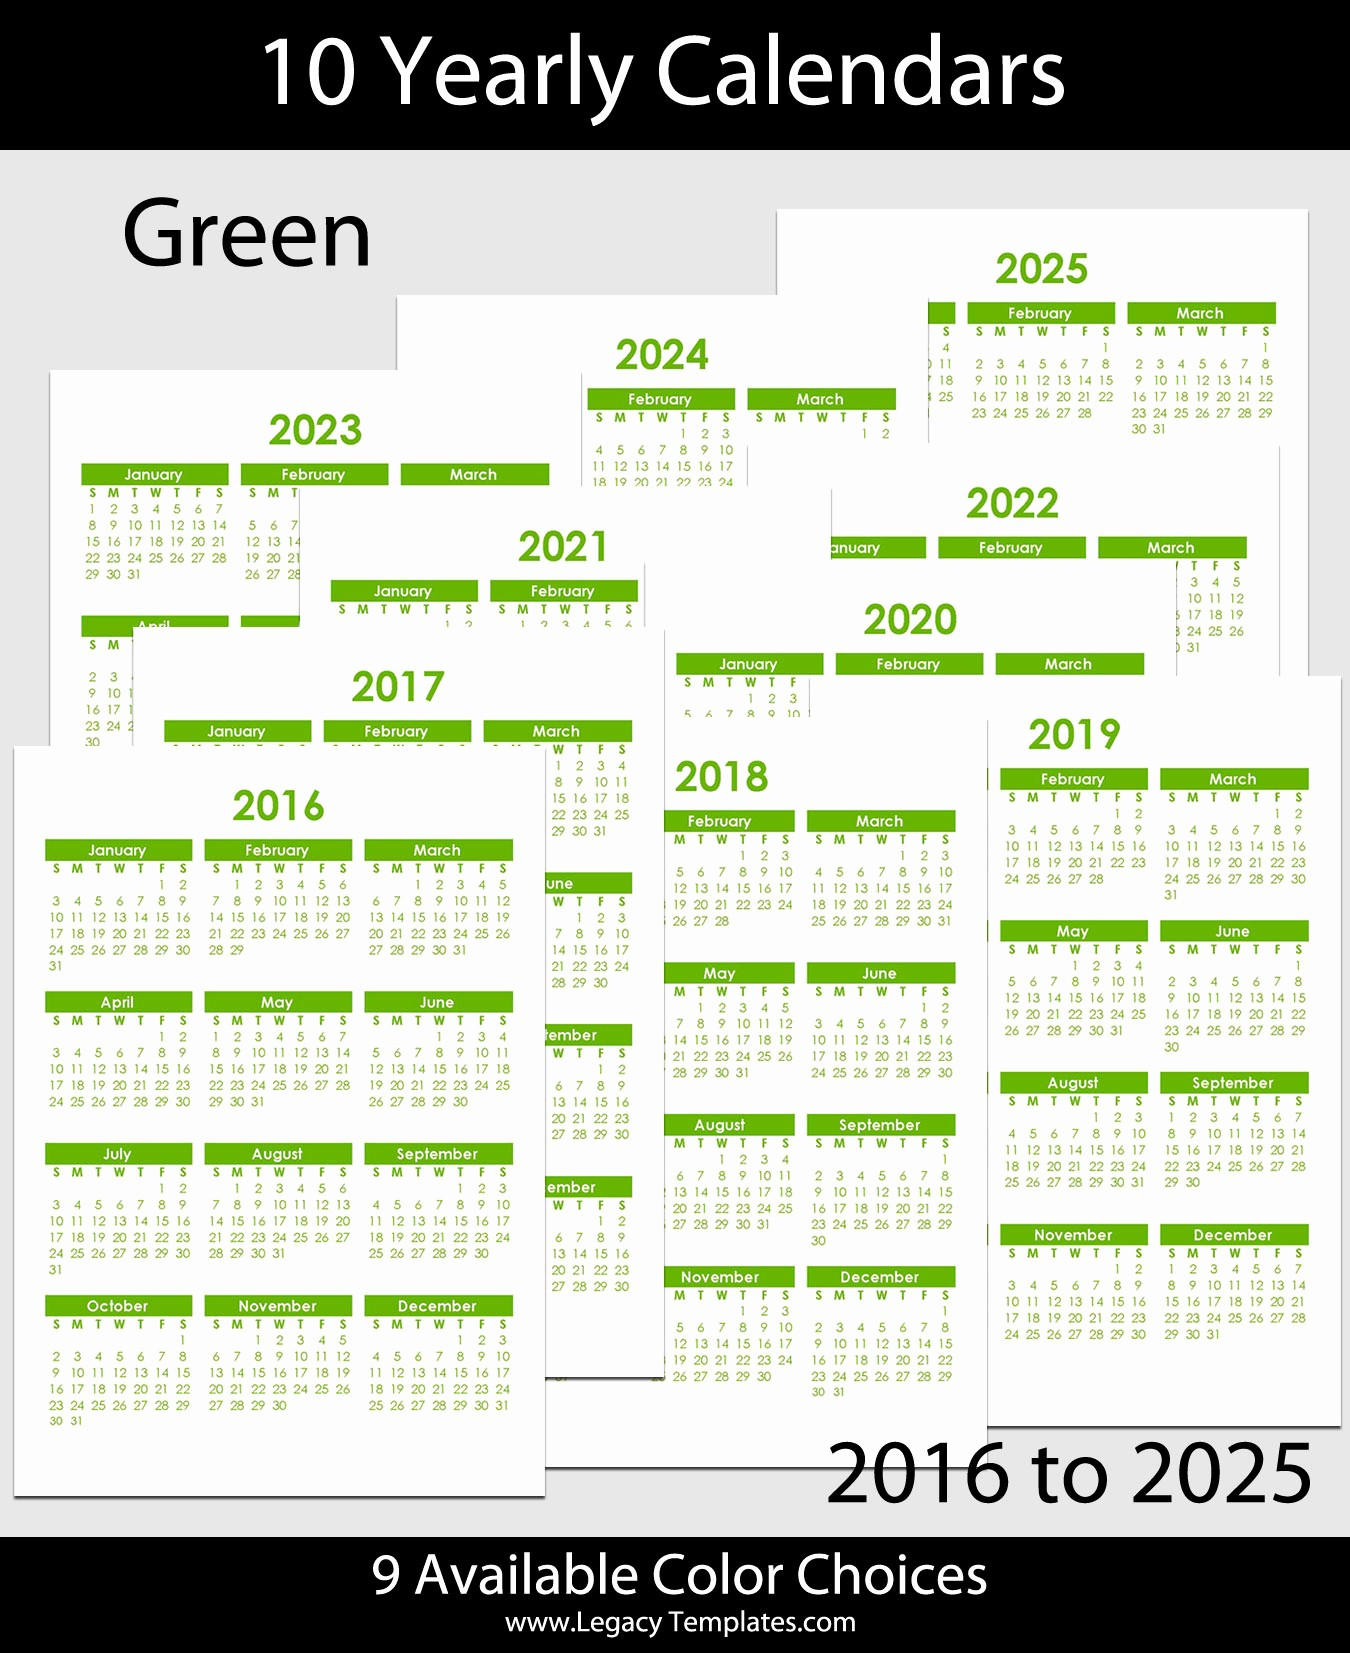 5 Year Calendar Starting 2016 Elegant 2016 to 2025 Yearly Calendar – A5